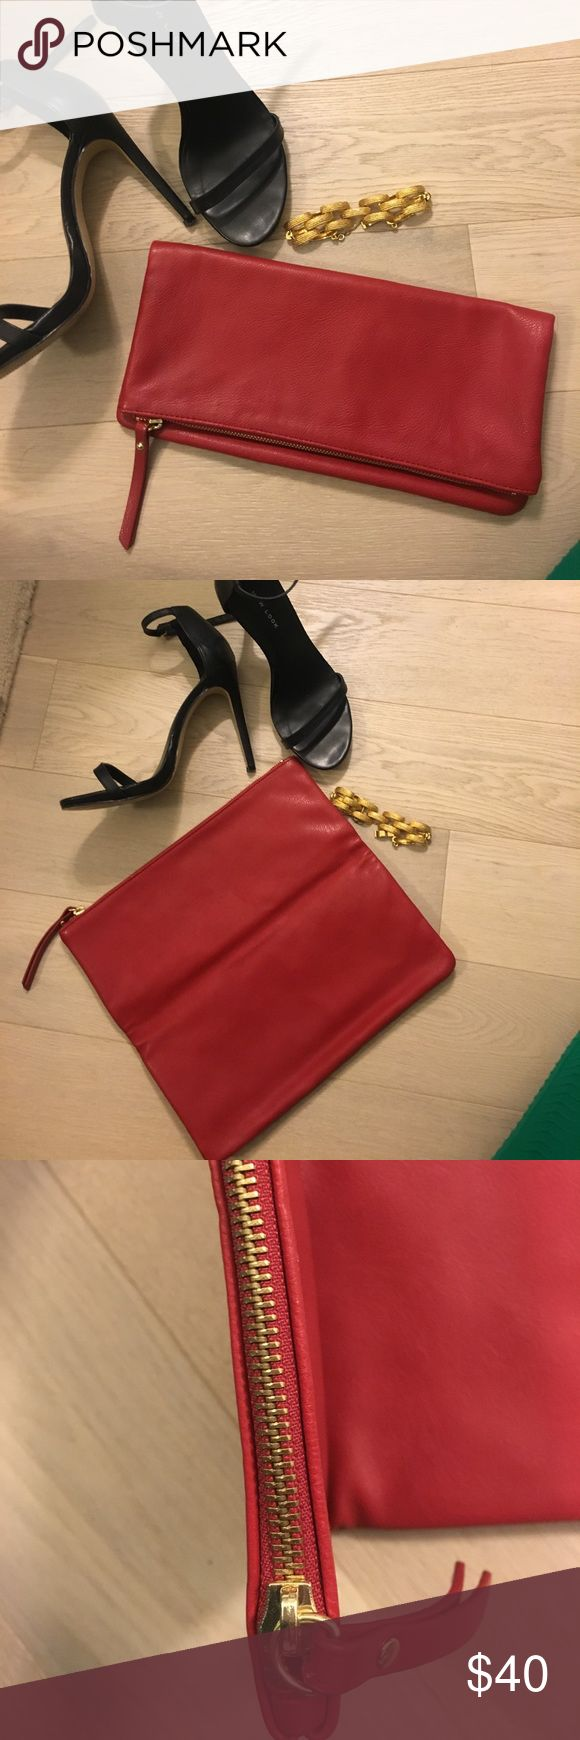 Red fold over clutch handbag • Banana Republic red fold over clutch handbag • Only used once - perfect condition • Gold zipper at top Banana Republic Bags Clutches & Wristlets